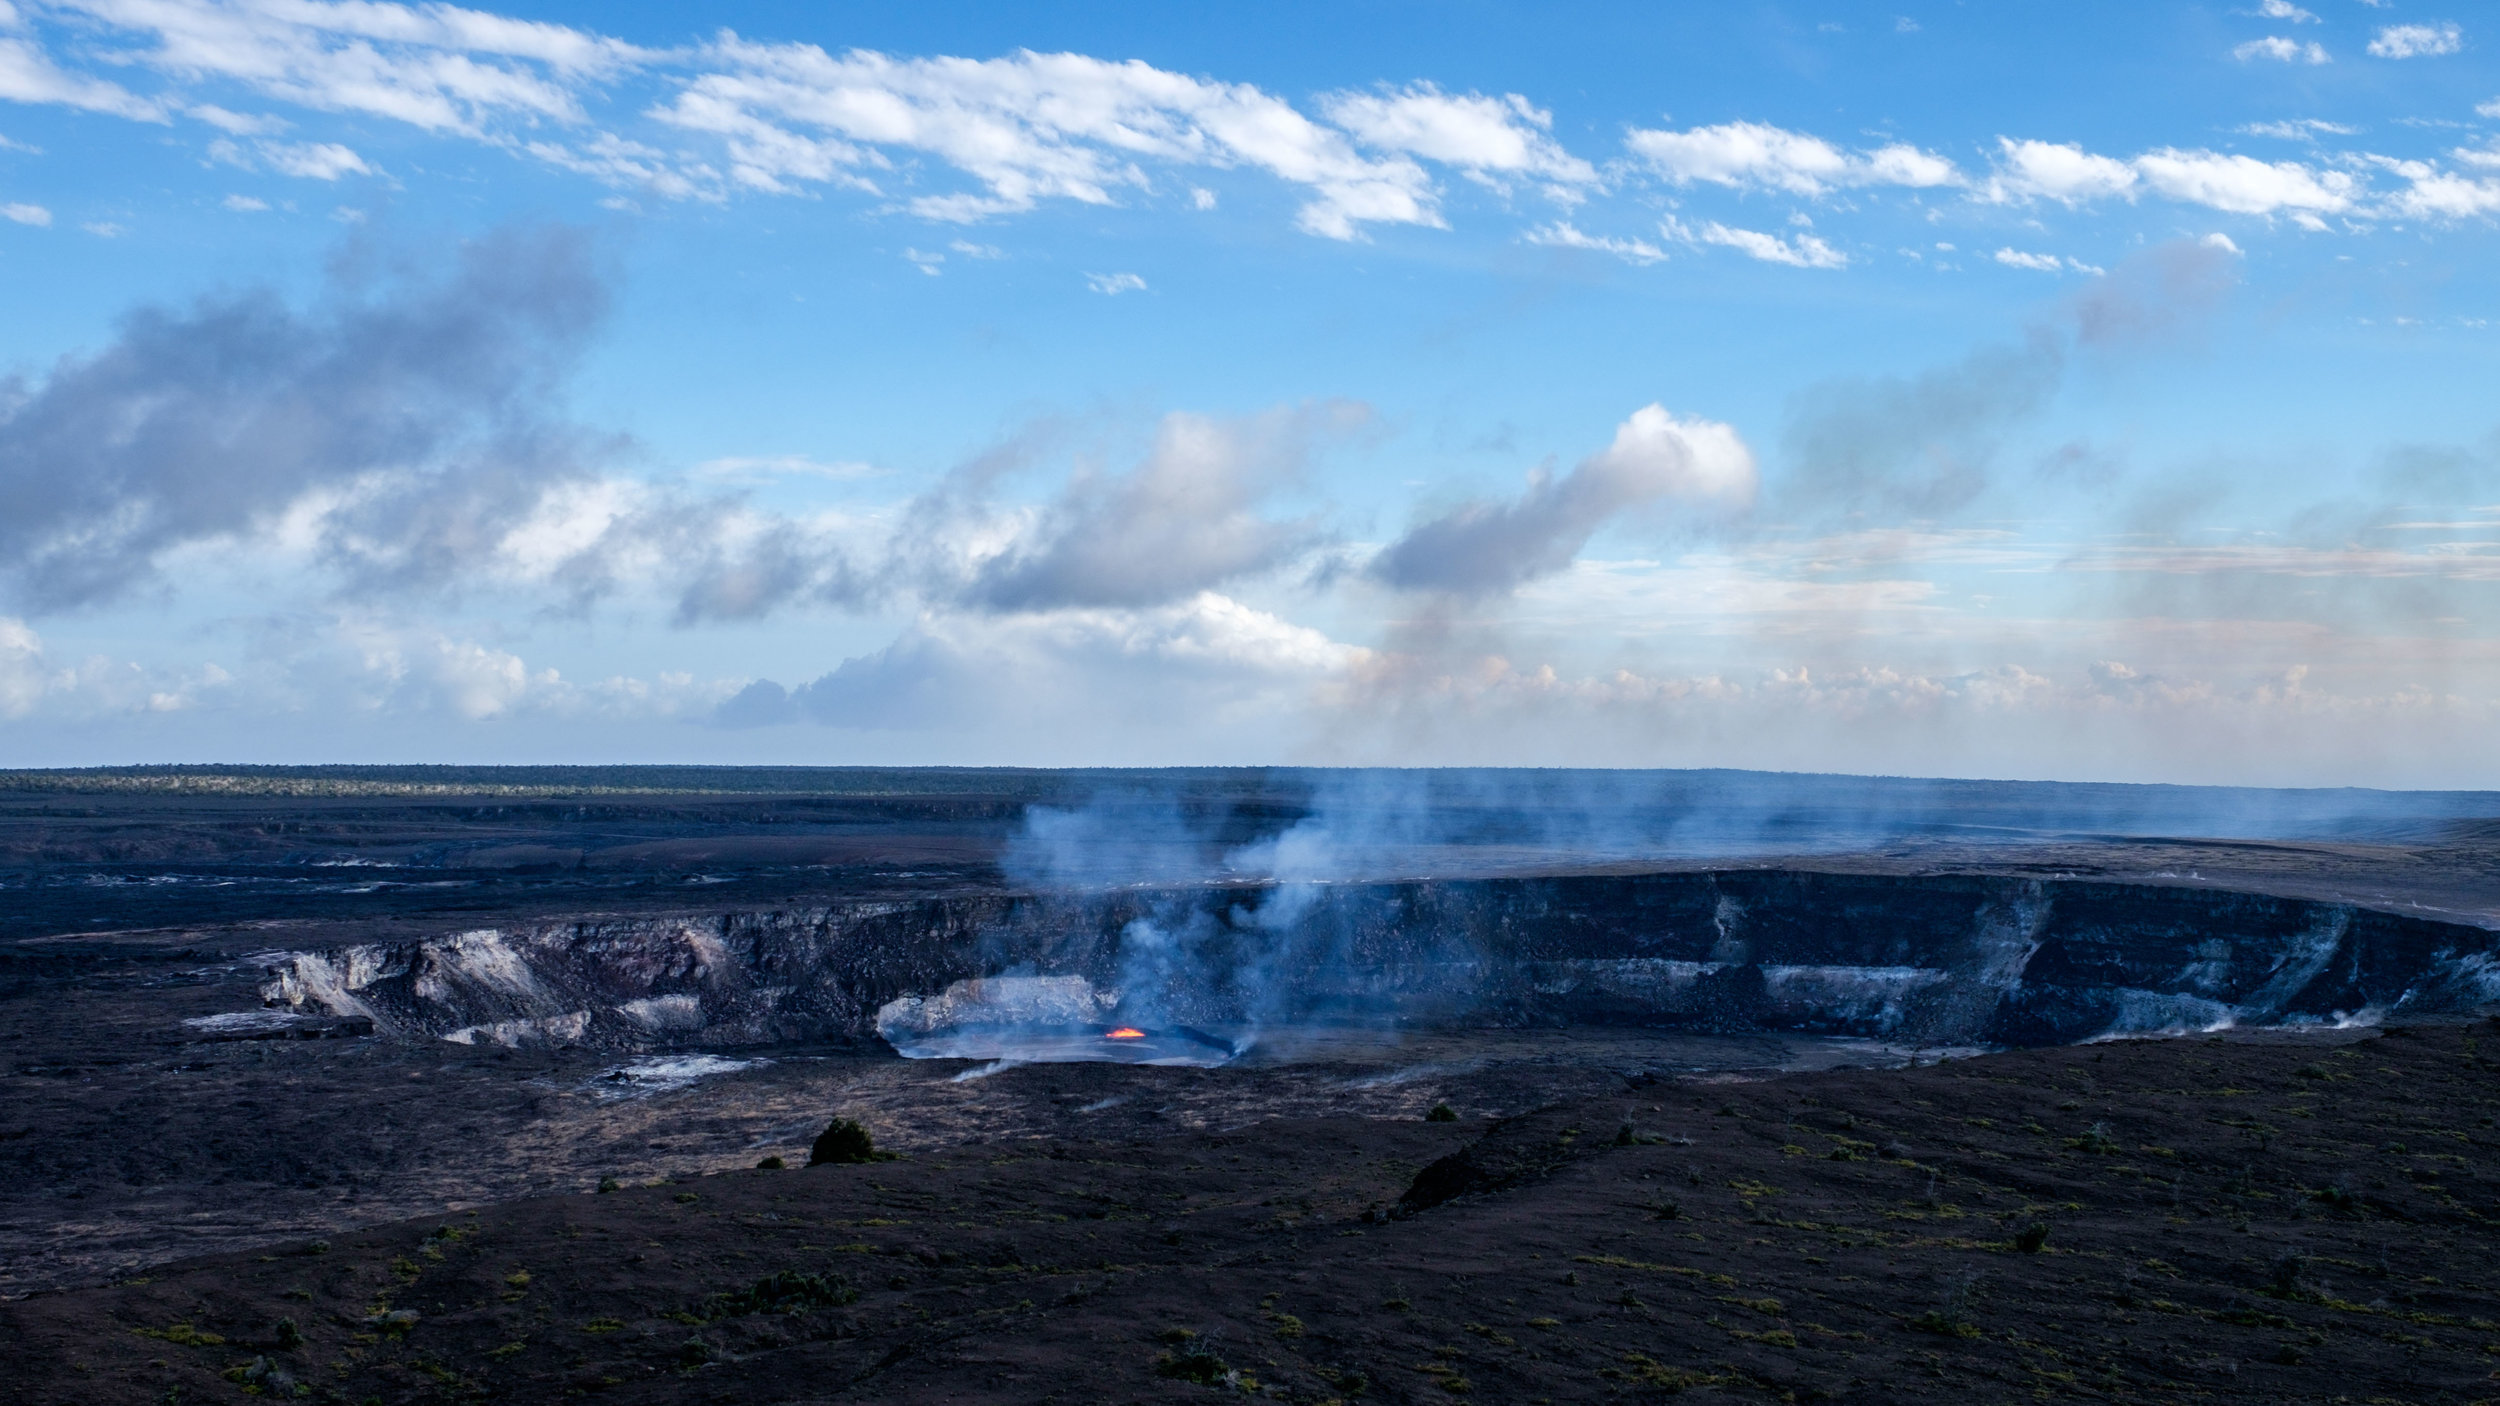 Halema'uma'u,Kīlauea's main crater   during the daytime as seen from the observation deck at the Jaggar Museum.